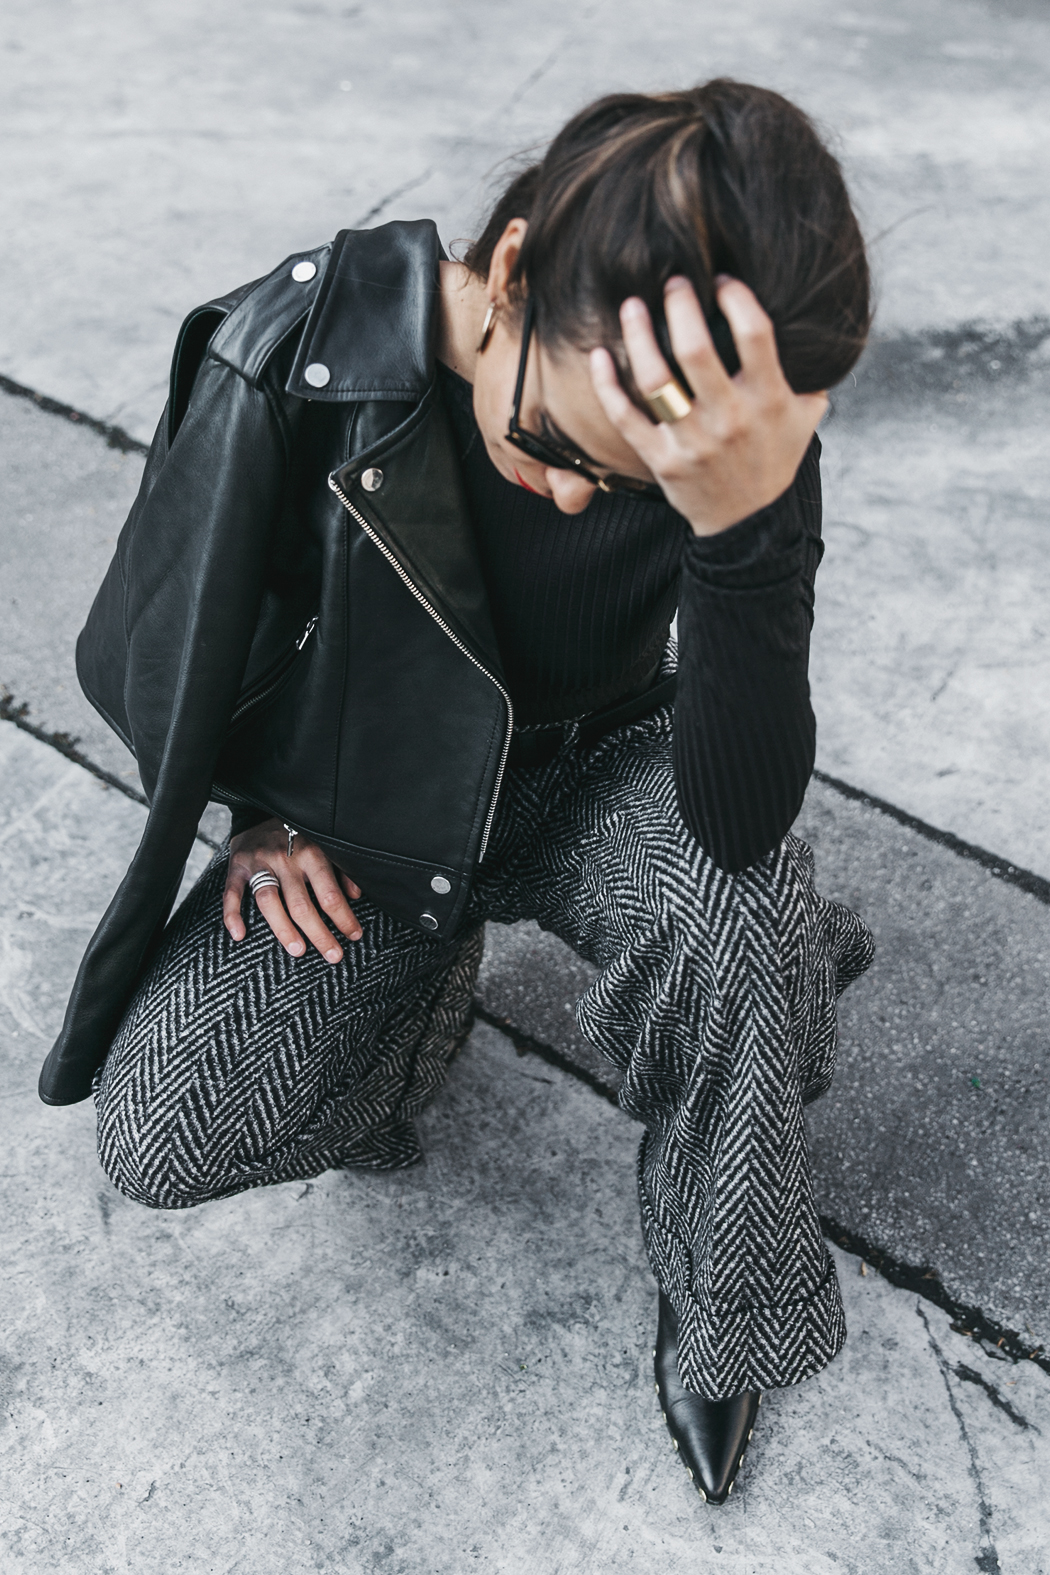 Black_Body-Leather_Jacket-Celine_boots-Gucci_Belt-Wide_Leg_Trousers-Street_Style-37